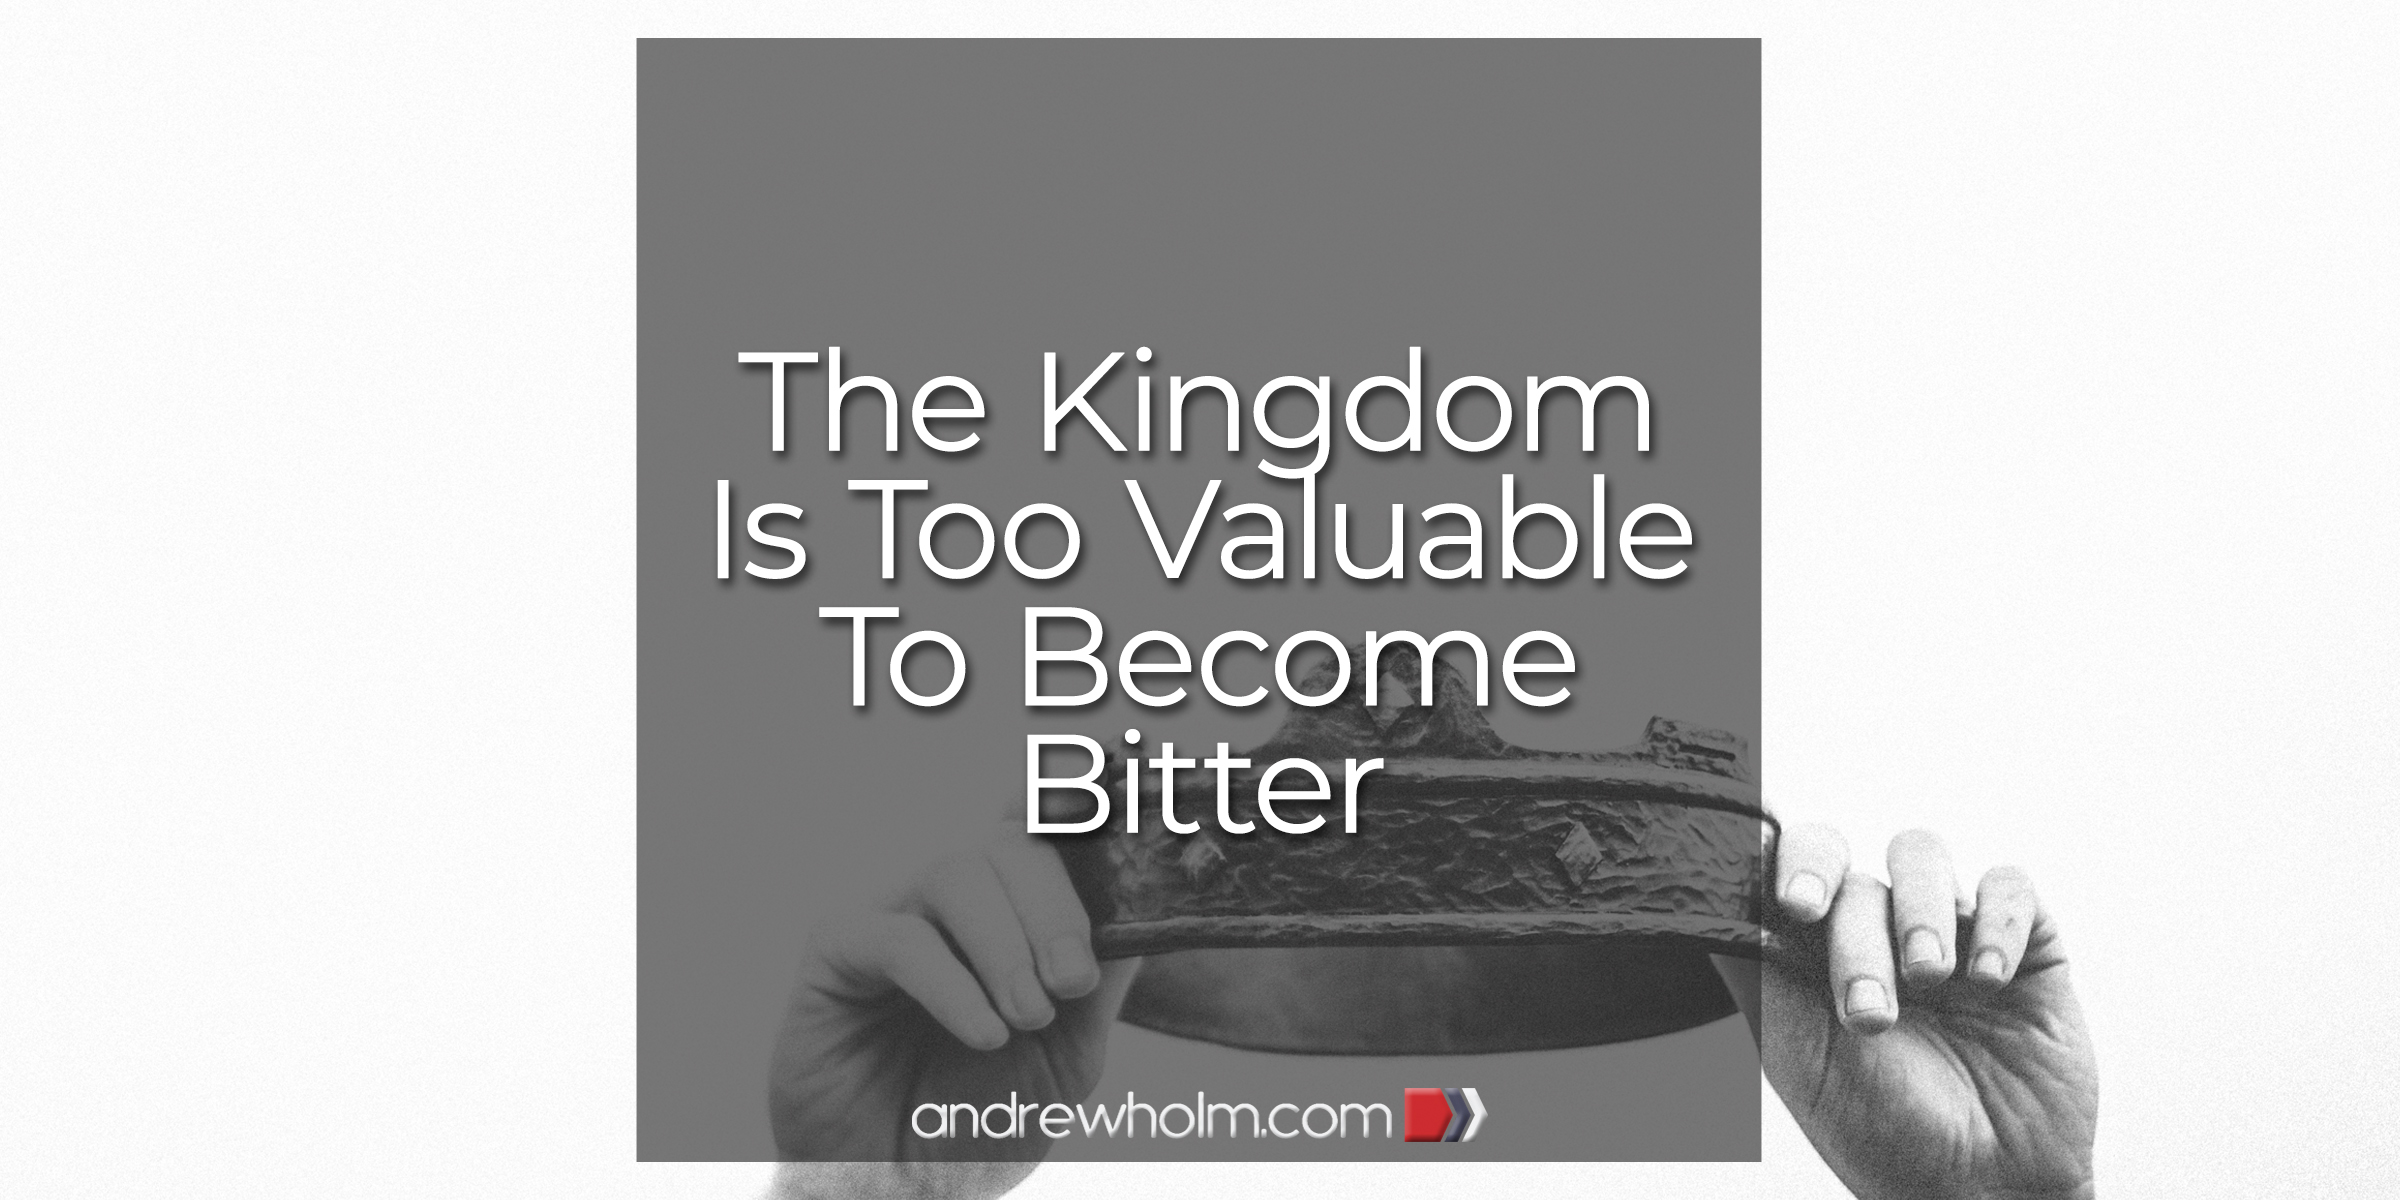 The Kingdom Is Too Valuable to Become Bitter